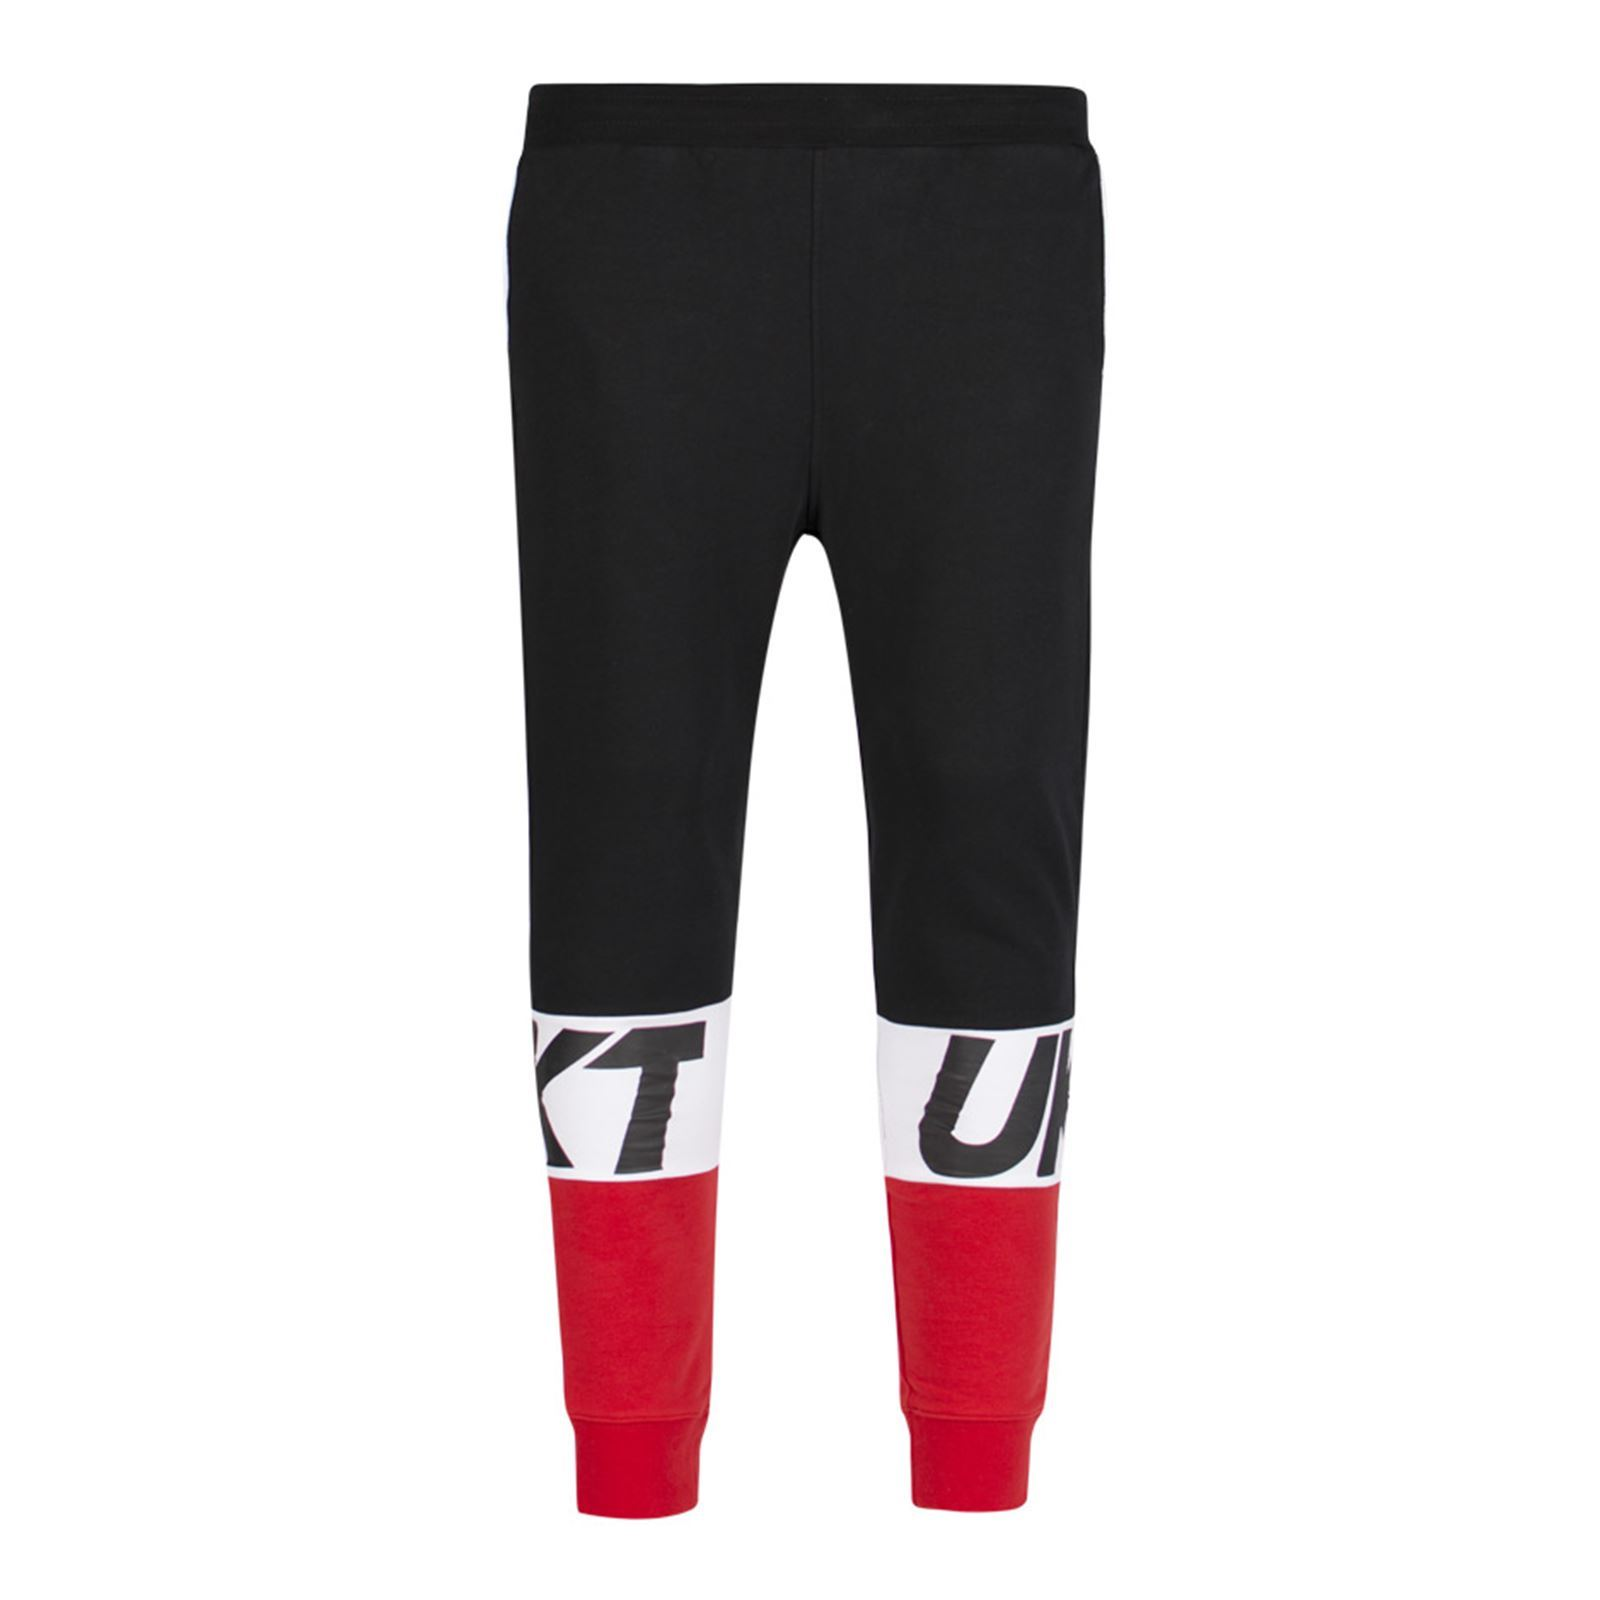 Ünkut Work - Pantalon jogging - noir